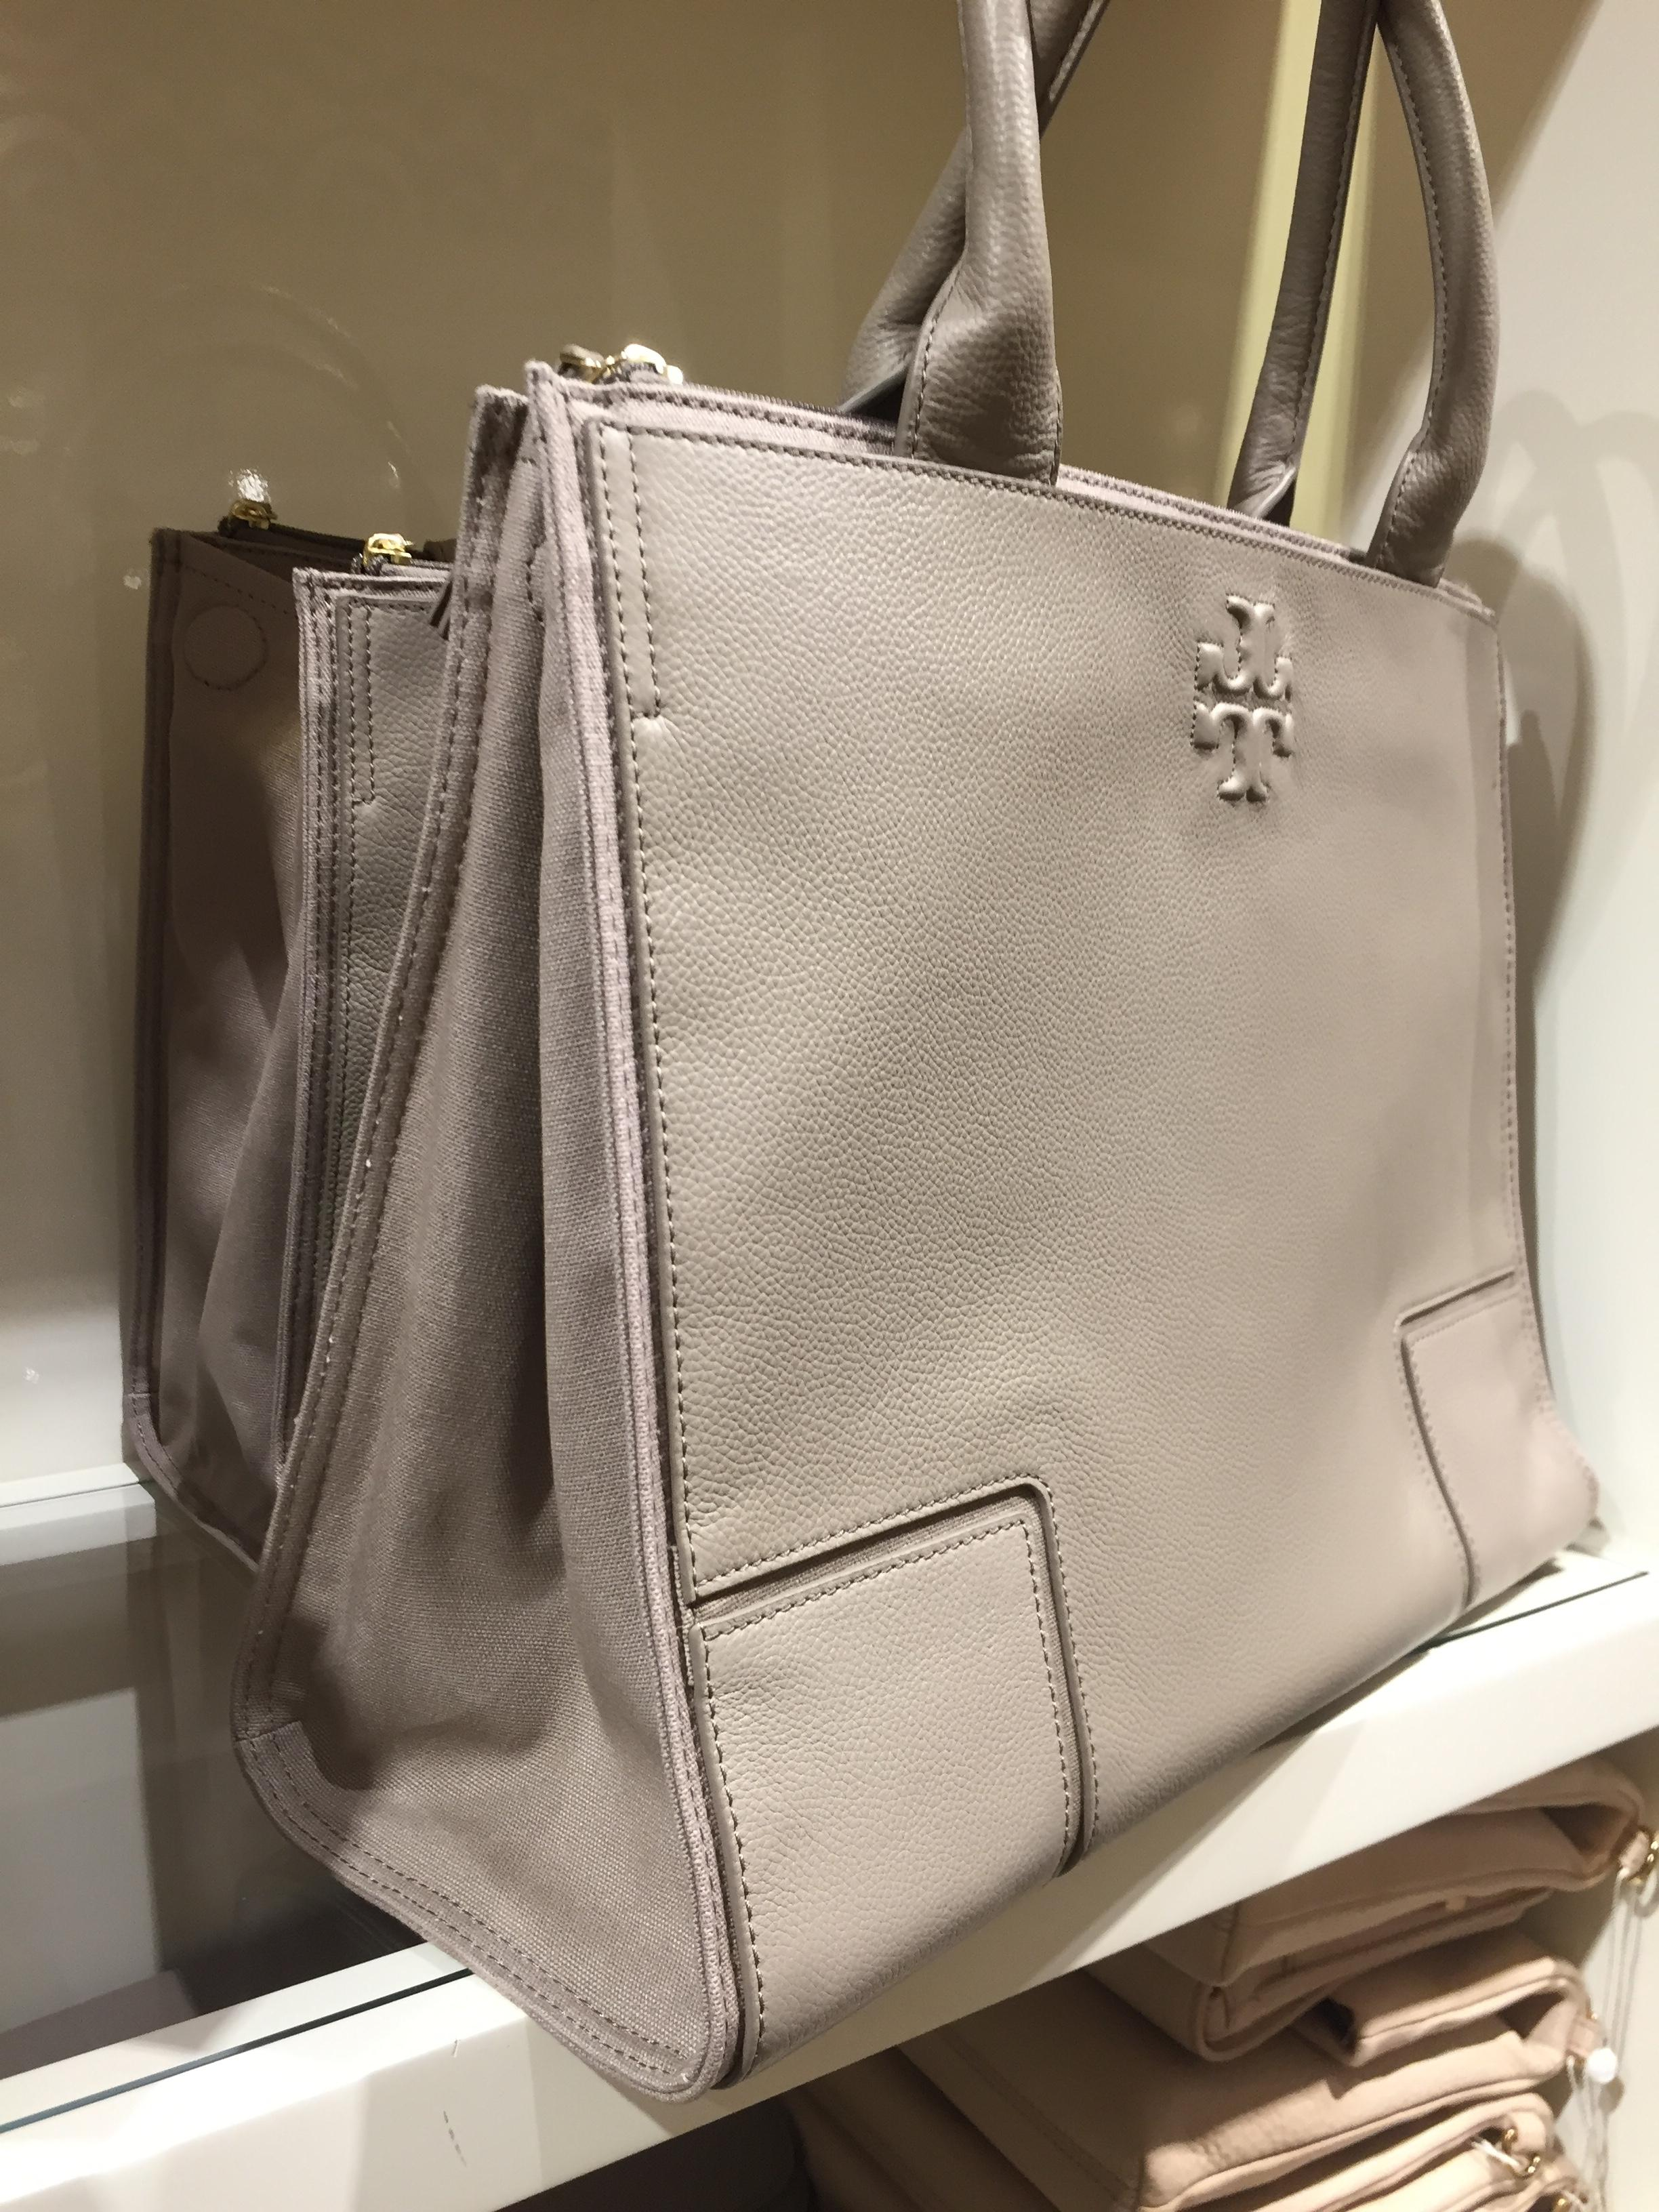 519d6be5fe7 ... coupon code for tory burch ella canvas leather tote in french grey.  123456 480d7 4fe28